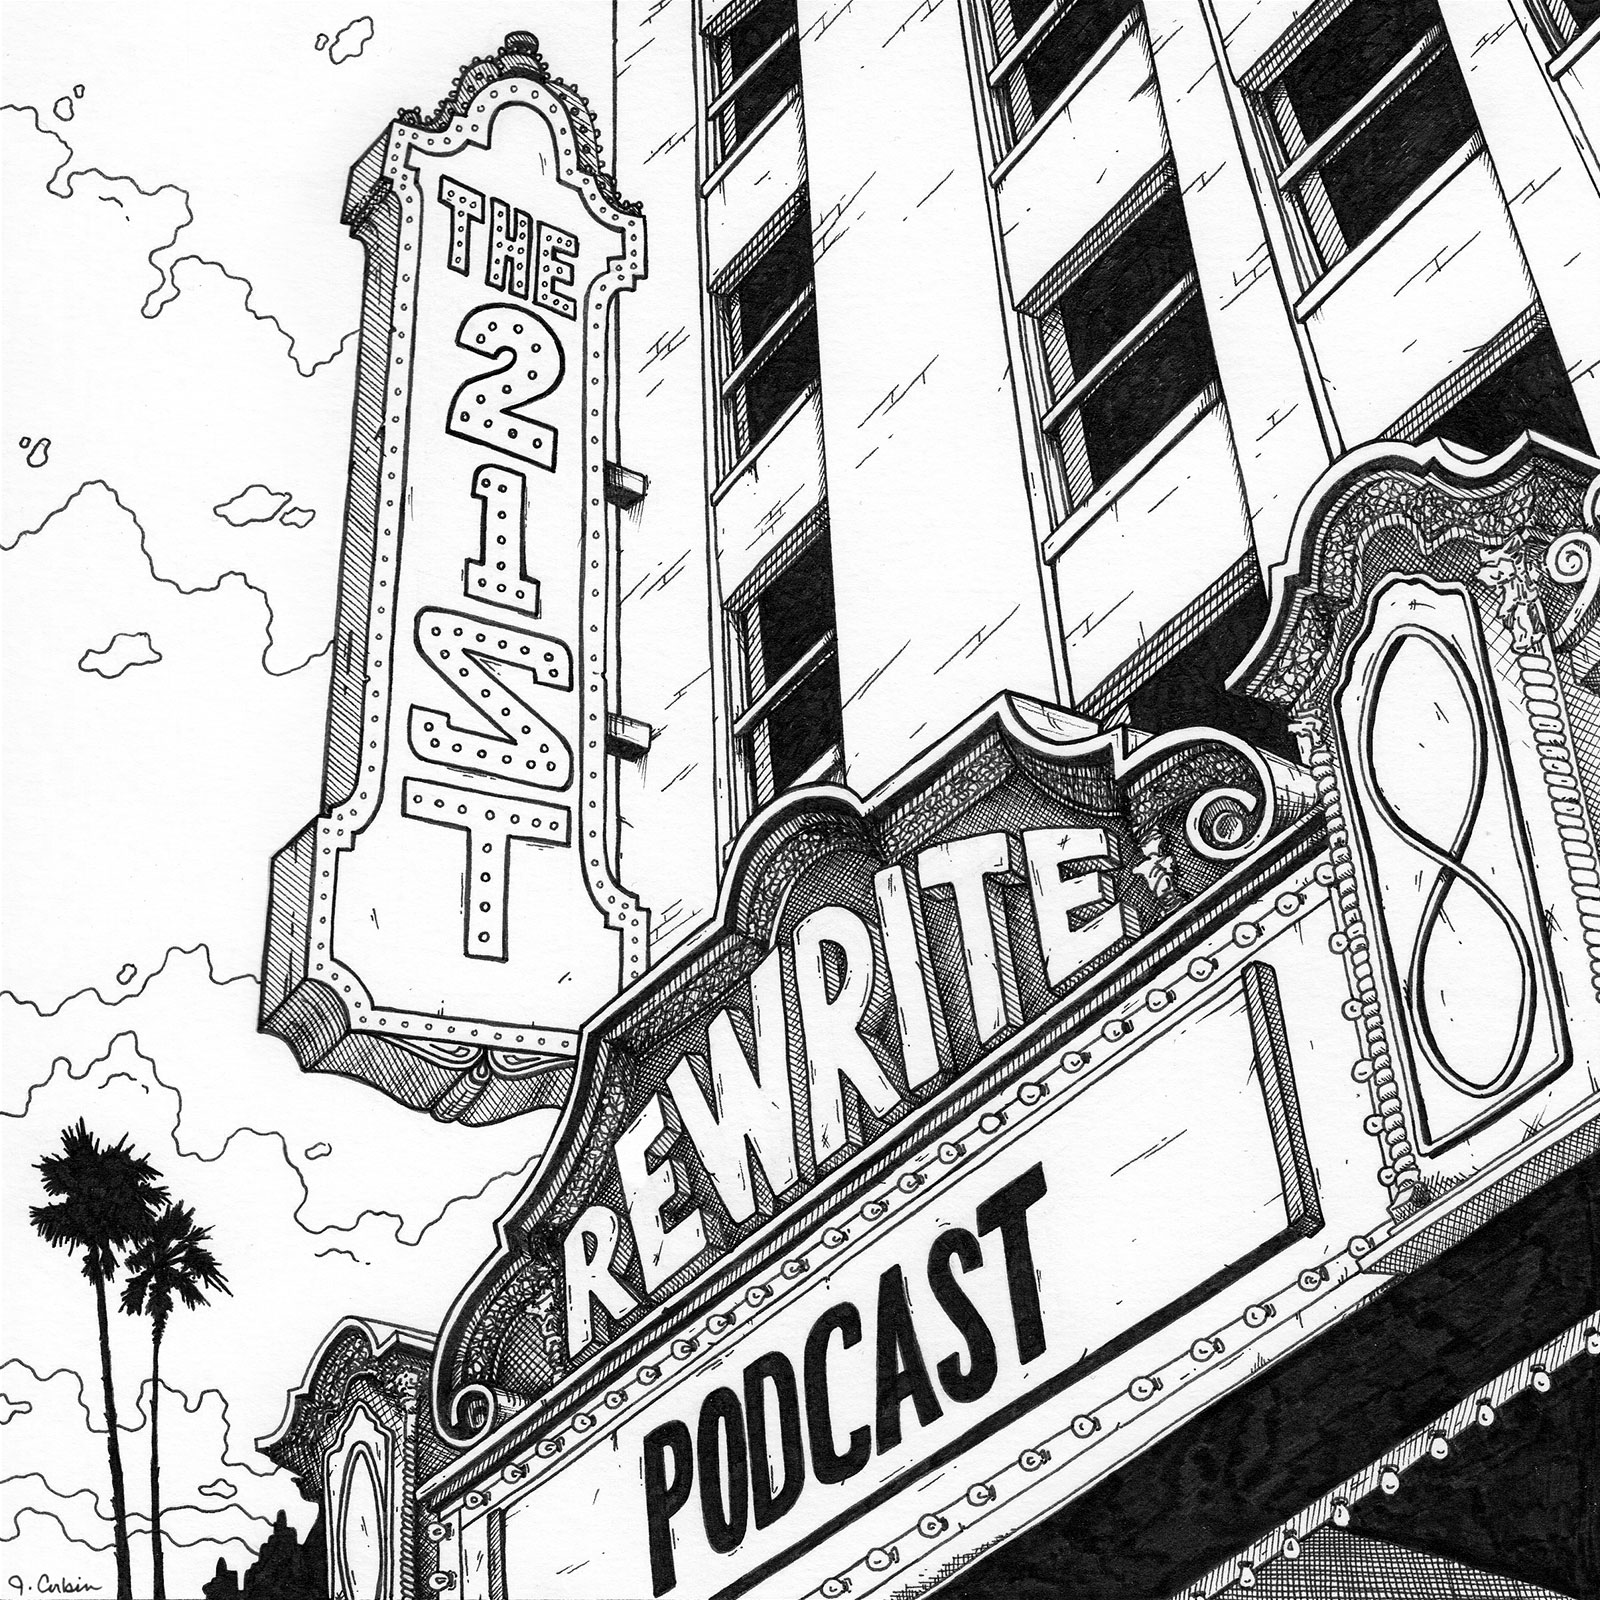 The 21st Rewrite Podcast